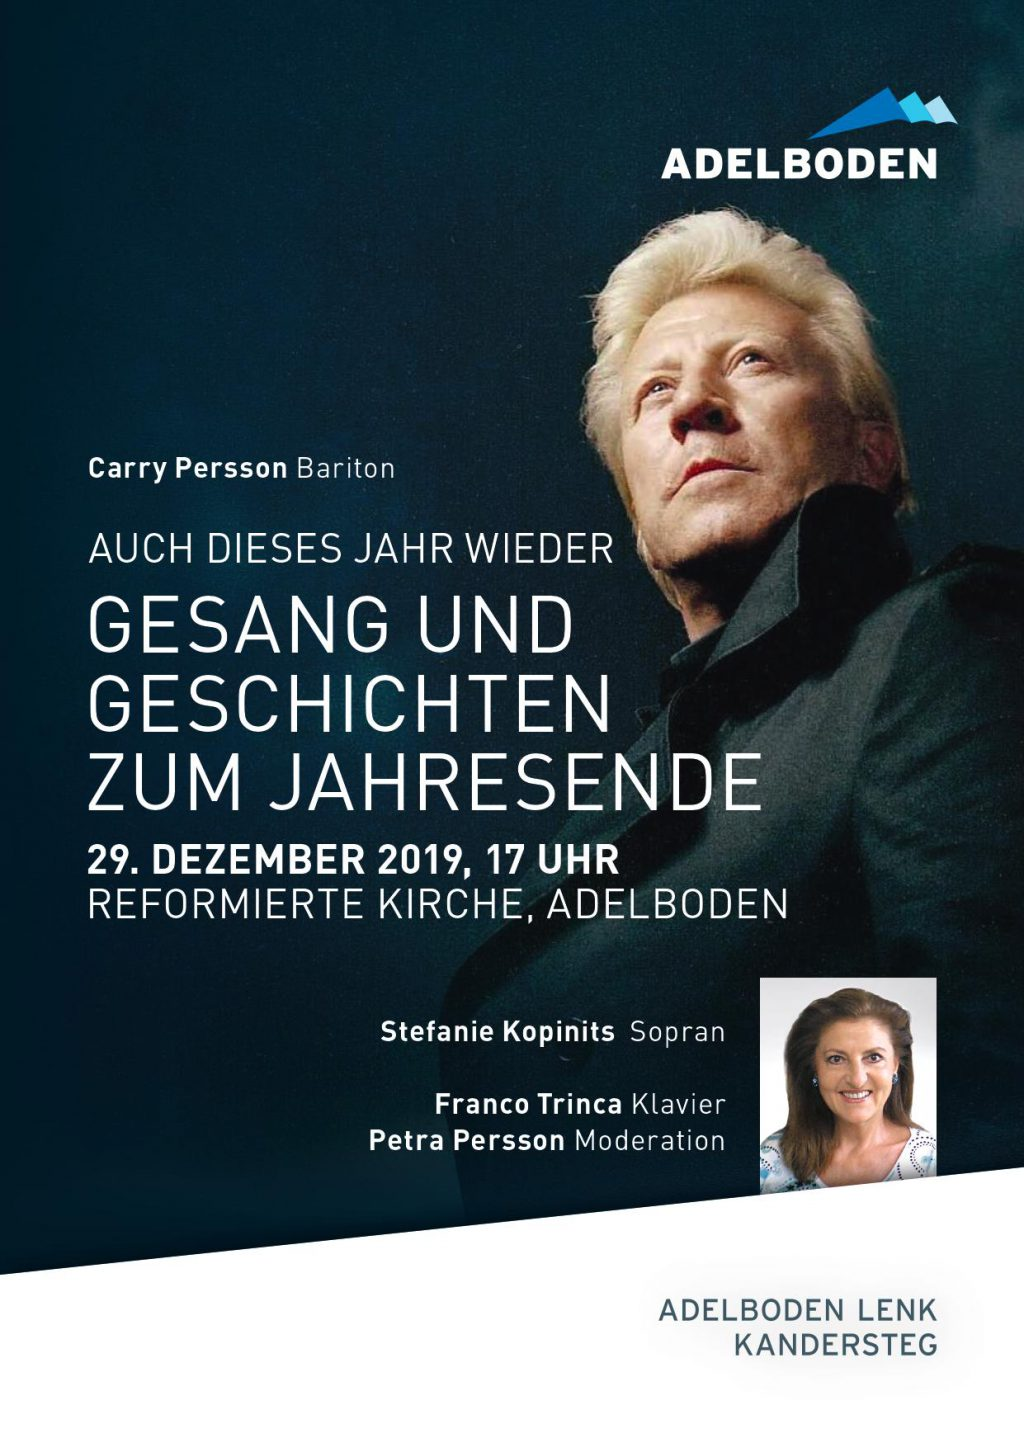 Carry Persson - Bariton - Reformierte Kirche Adelboden